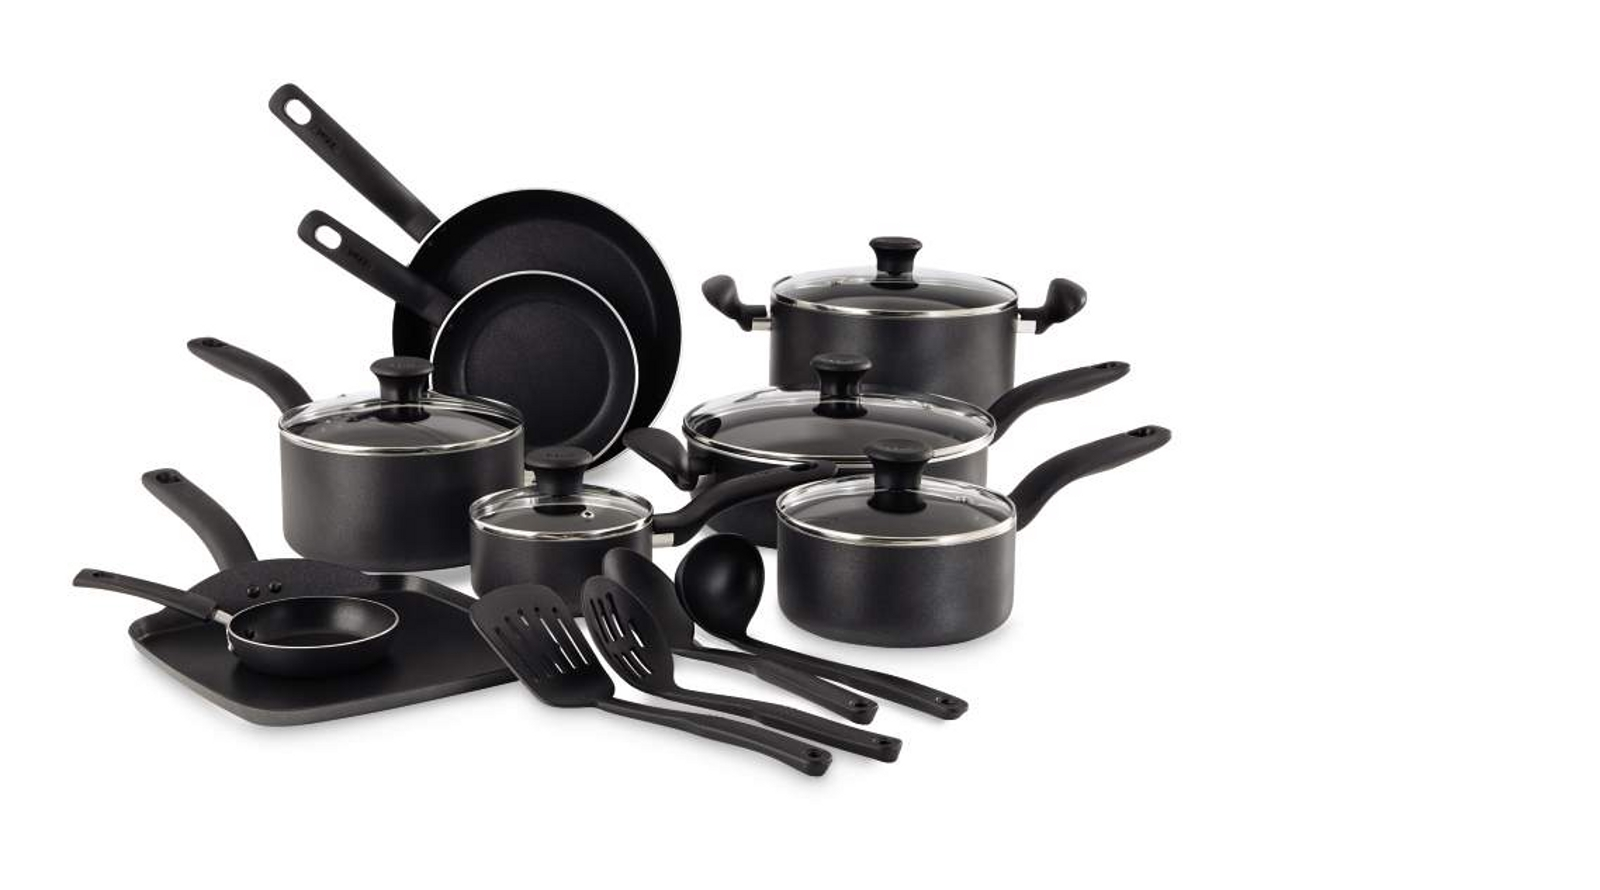 T-fal Initiatives 18-Piece Nonstick Inside and Out Cookware Set, Gray